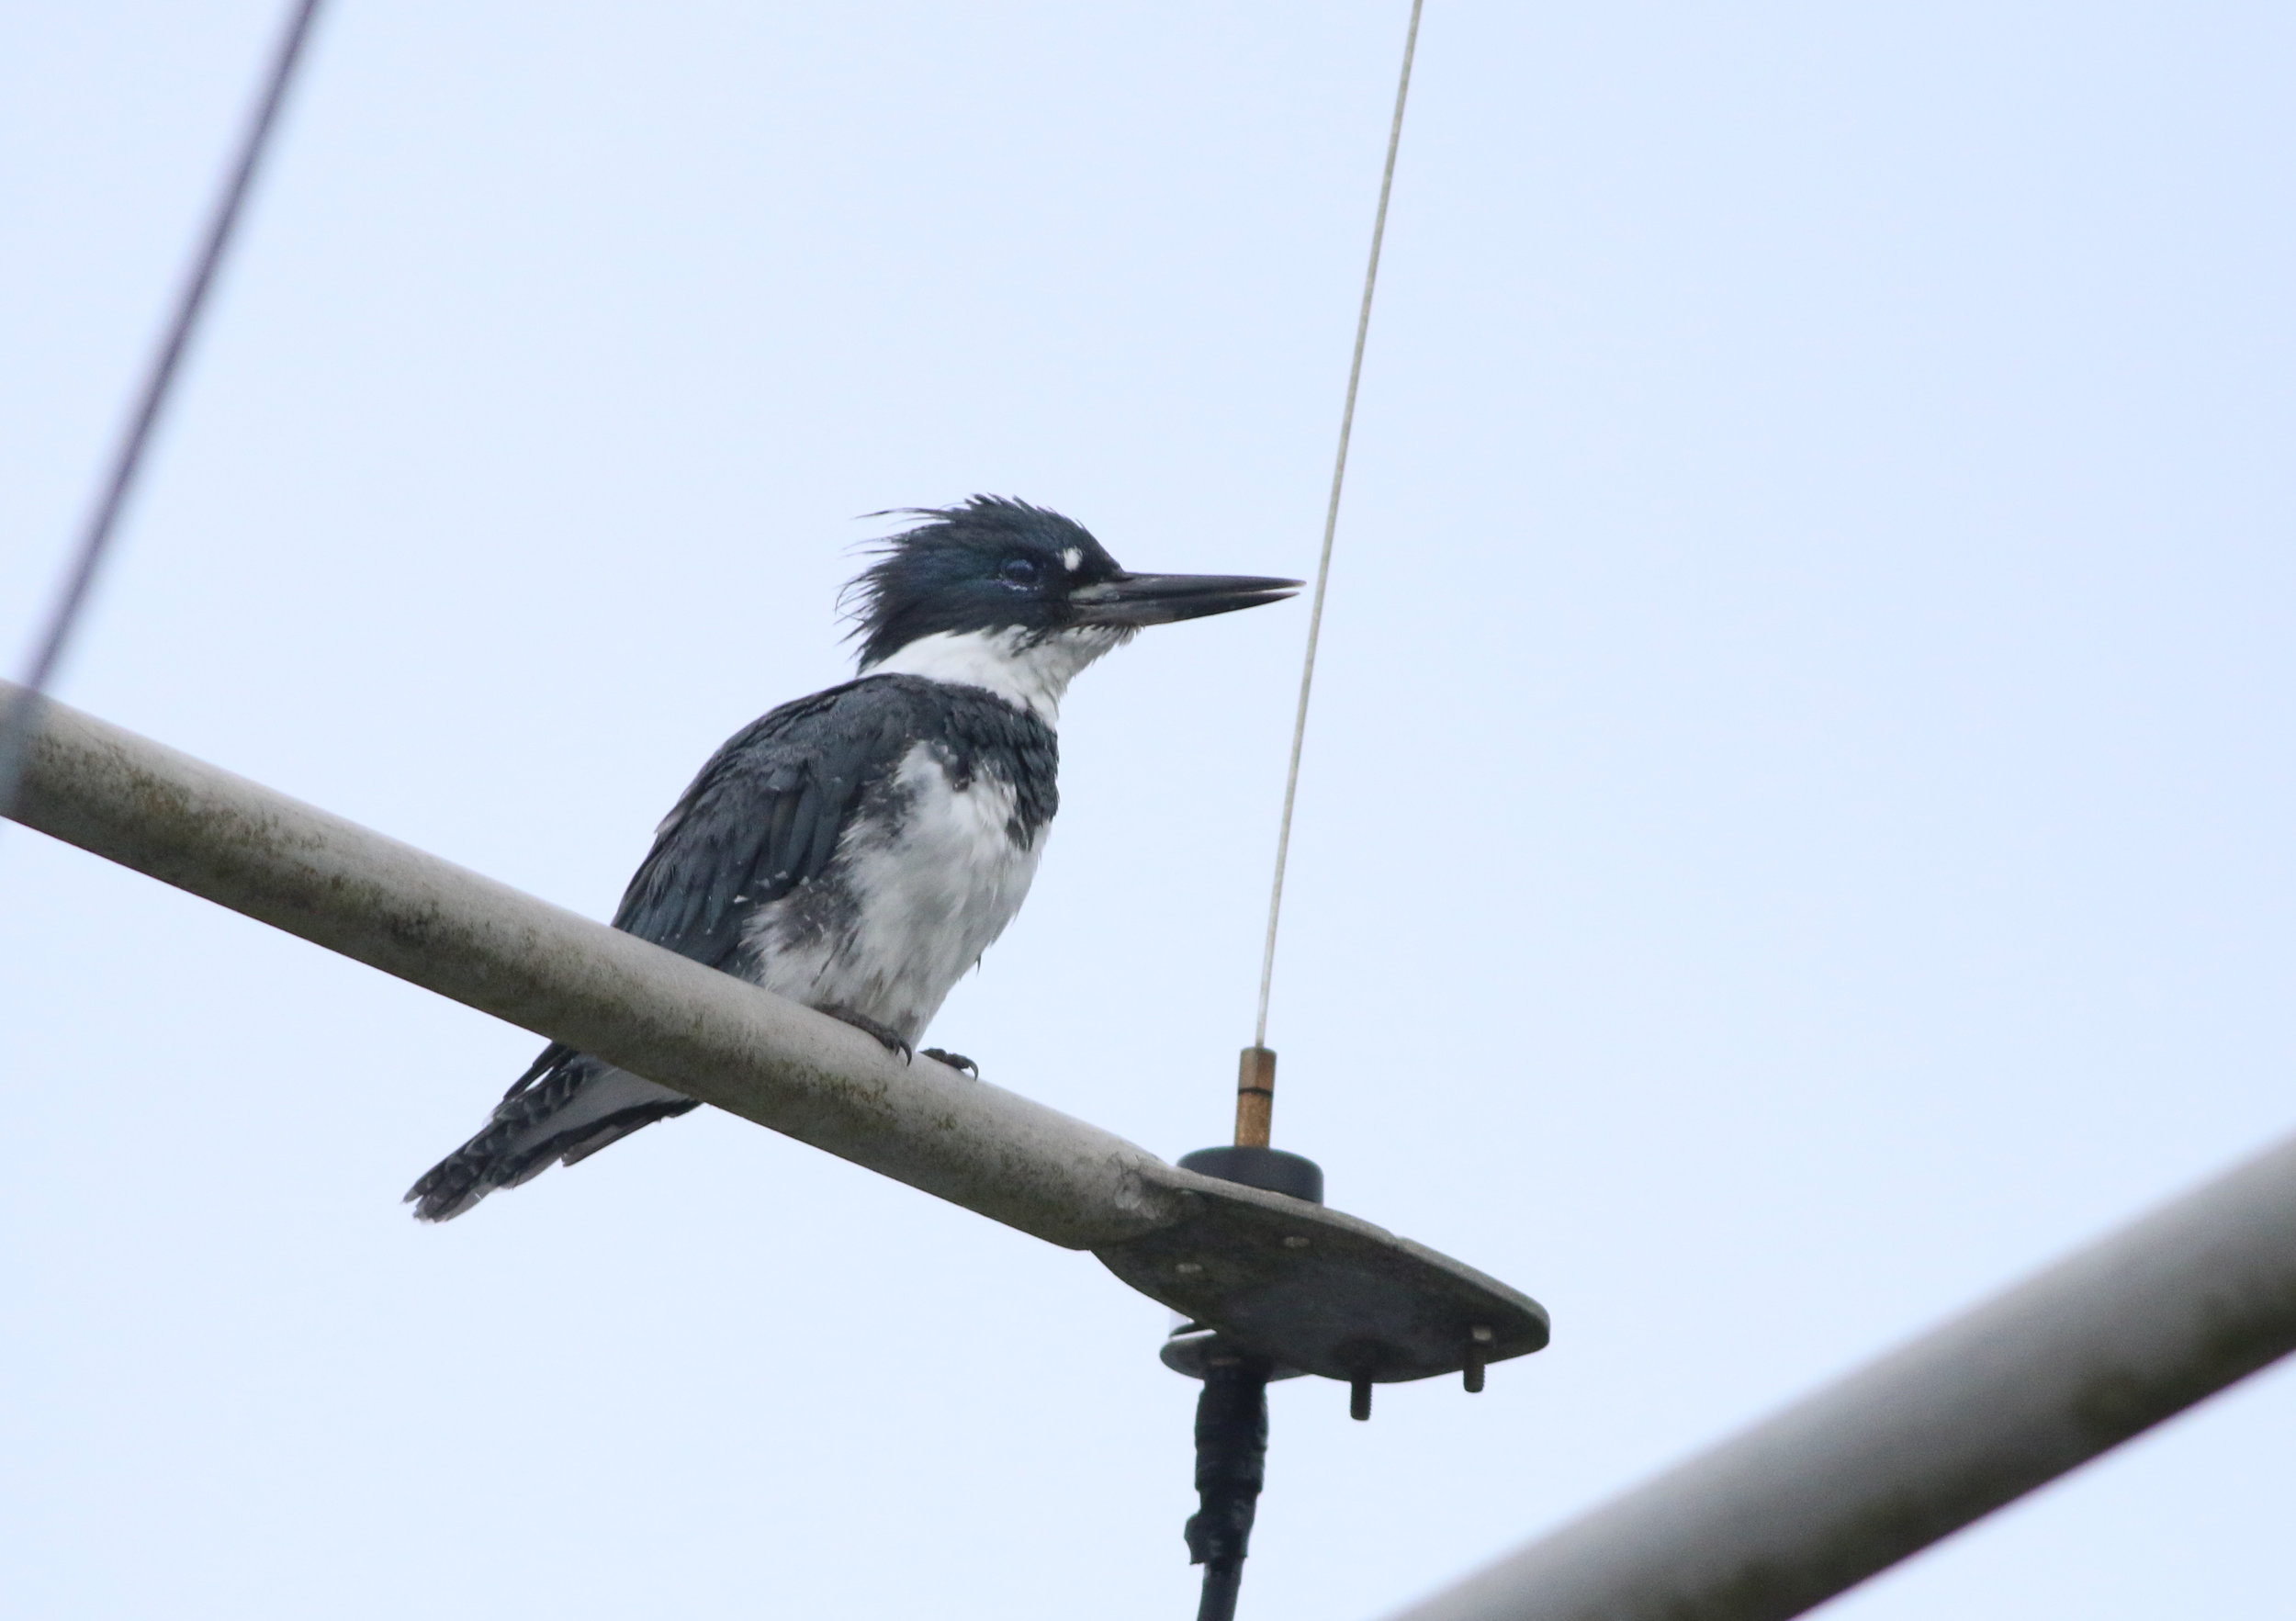 The Belted Kingfisher sits atop a mast in Hoonah, AK, waiting for just the right moment to dive!